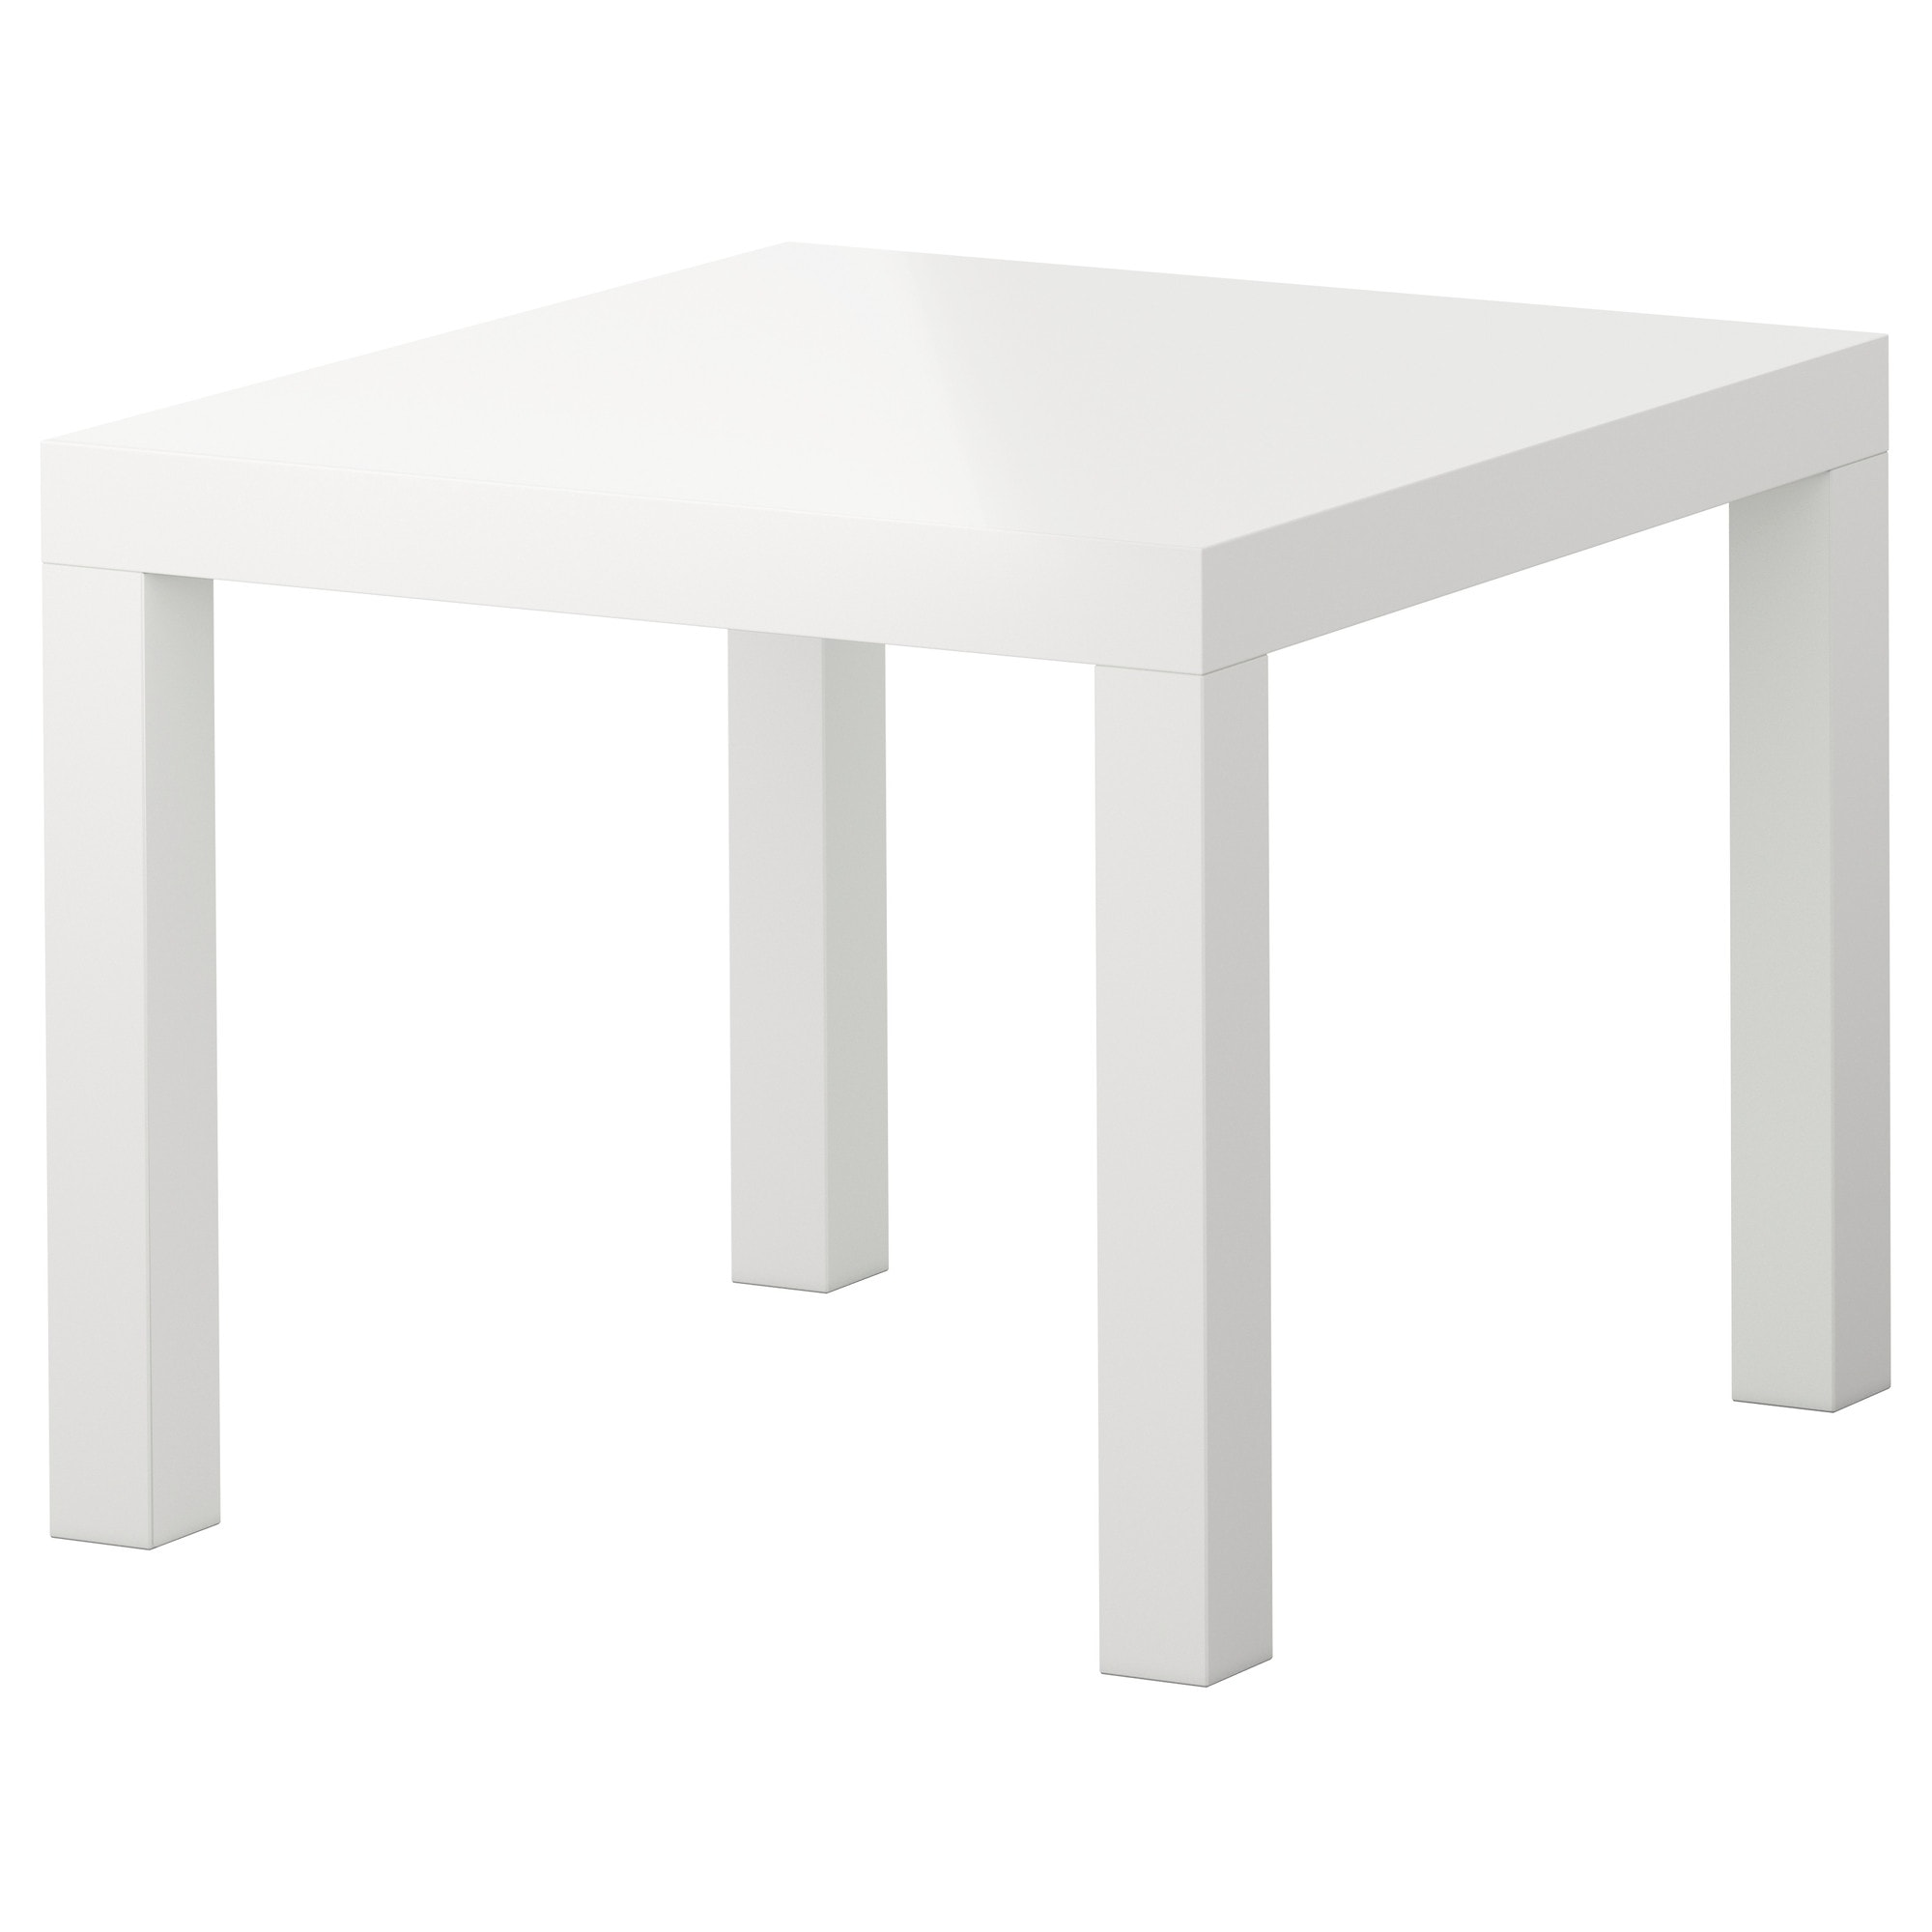 "LACK Side table high gloss white 21 5 8x21 5 8 "" IKEA"